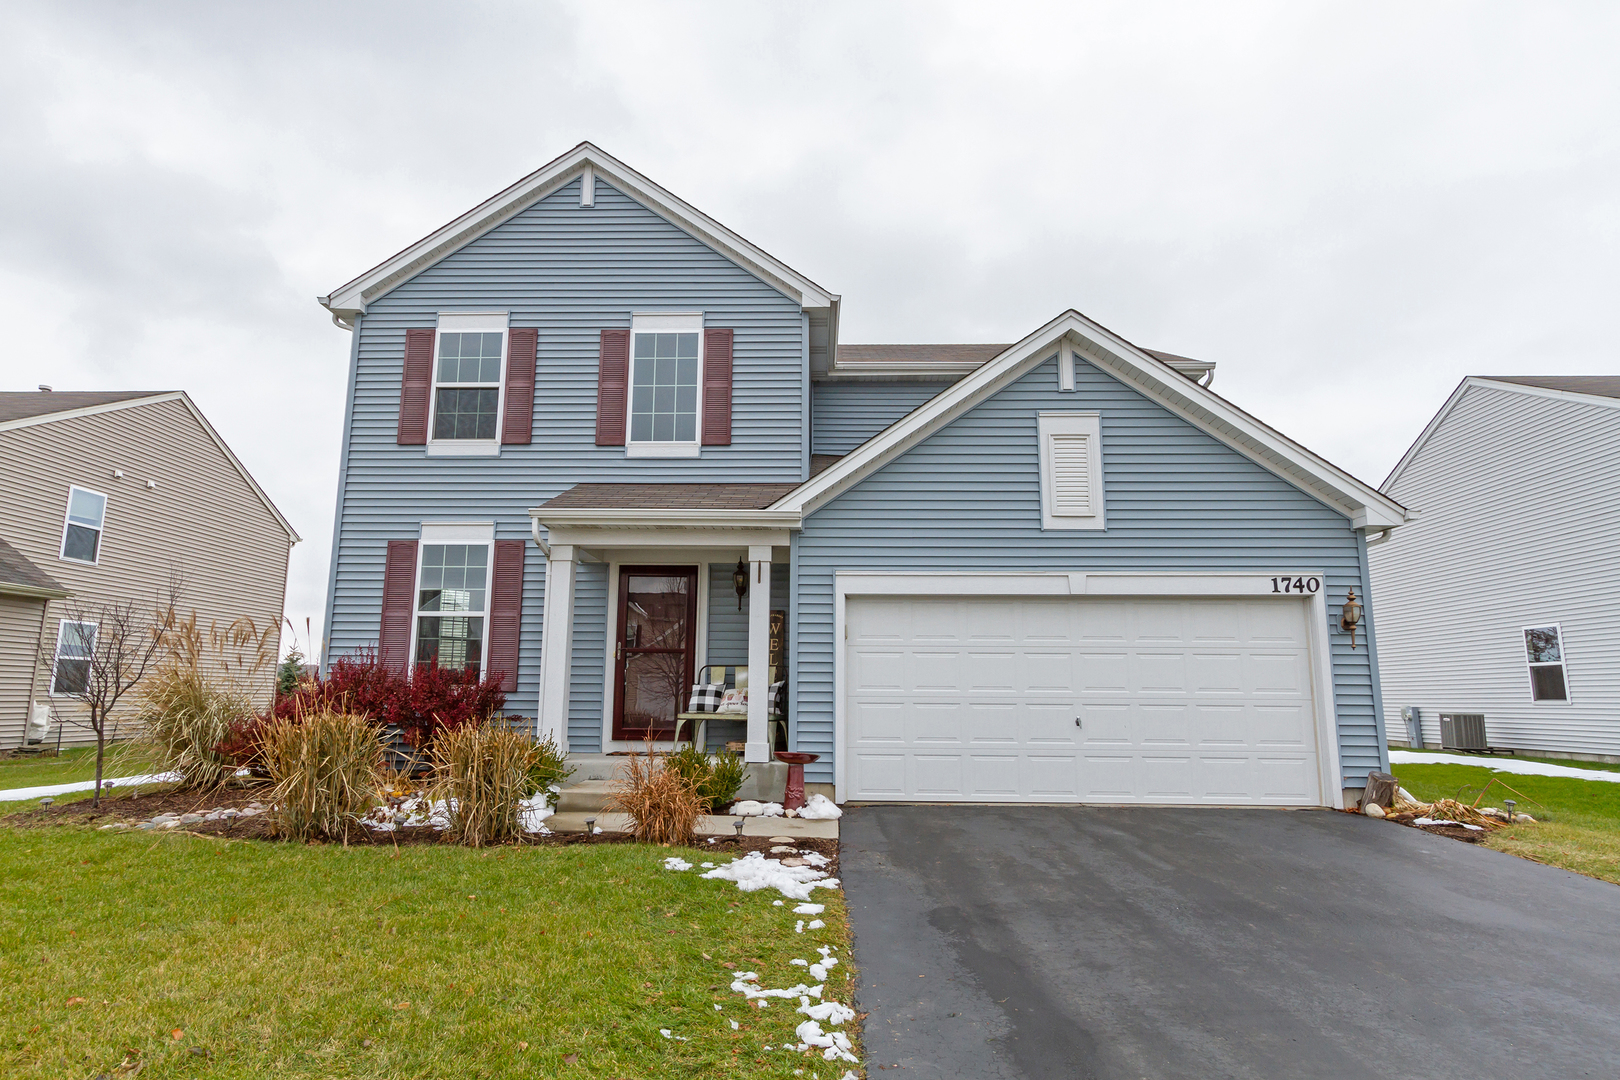 Photo for 1740 Rockport Road, Hampshire, IL 60140 (MLS # 10577504)